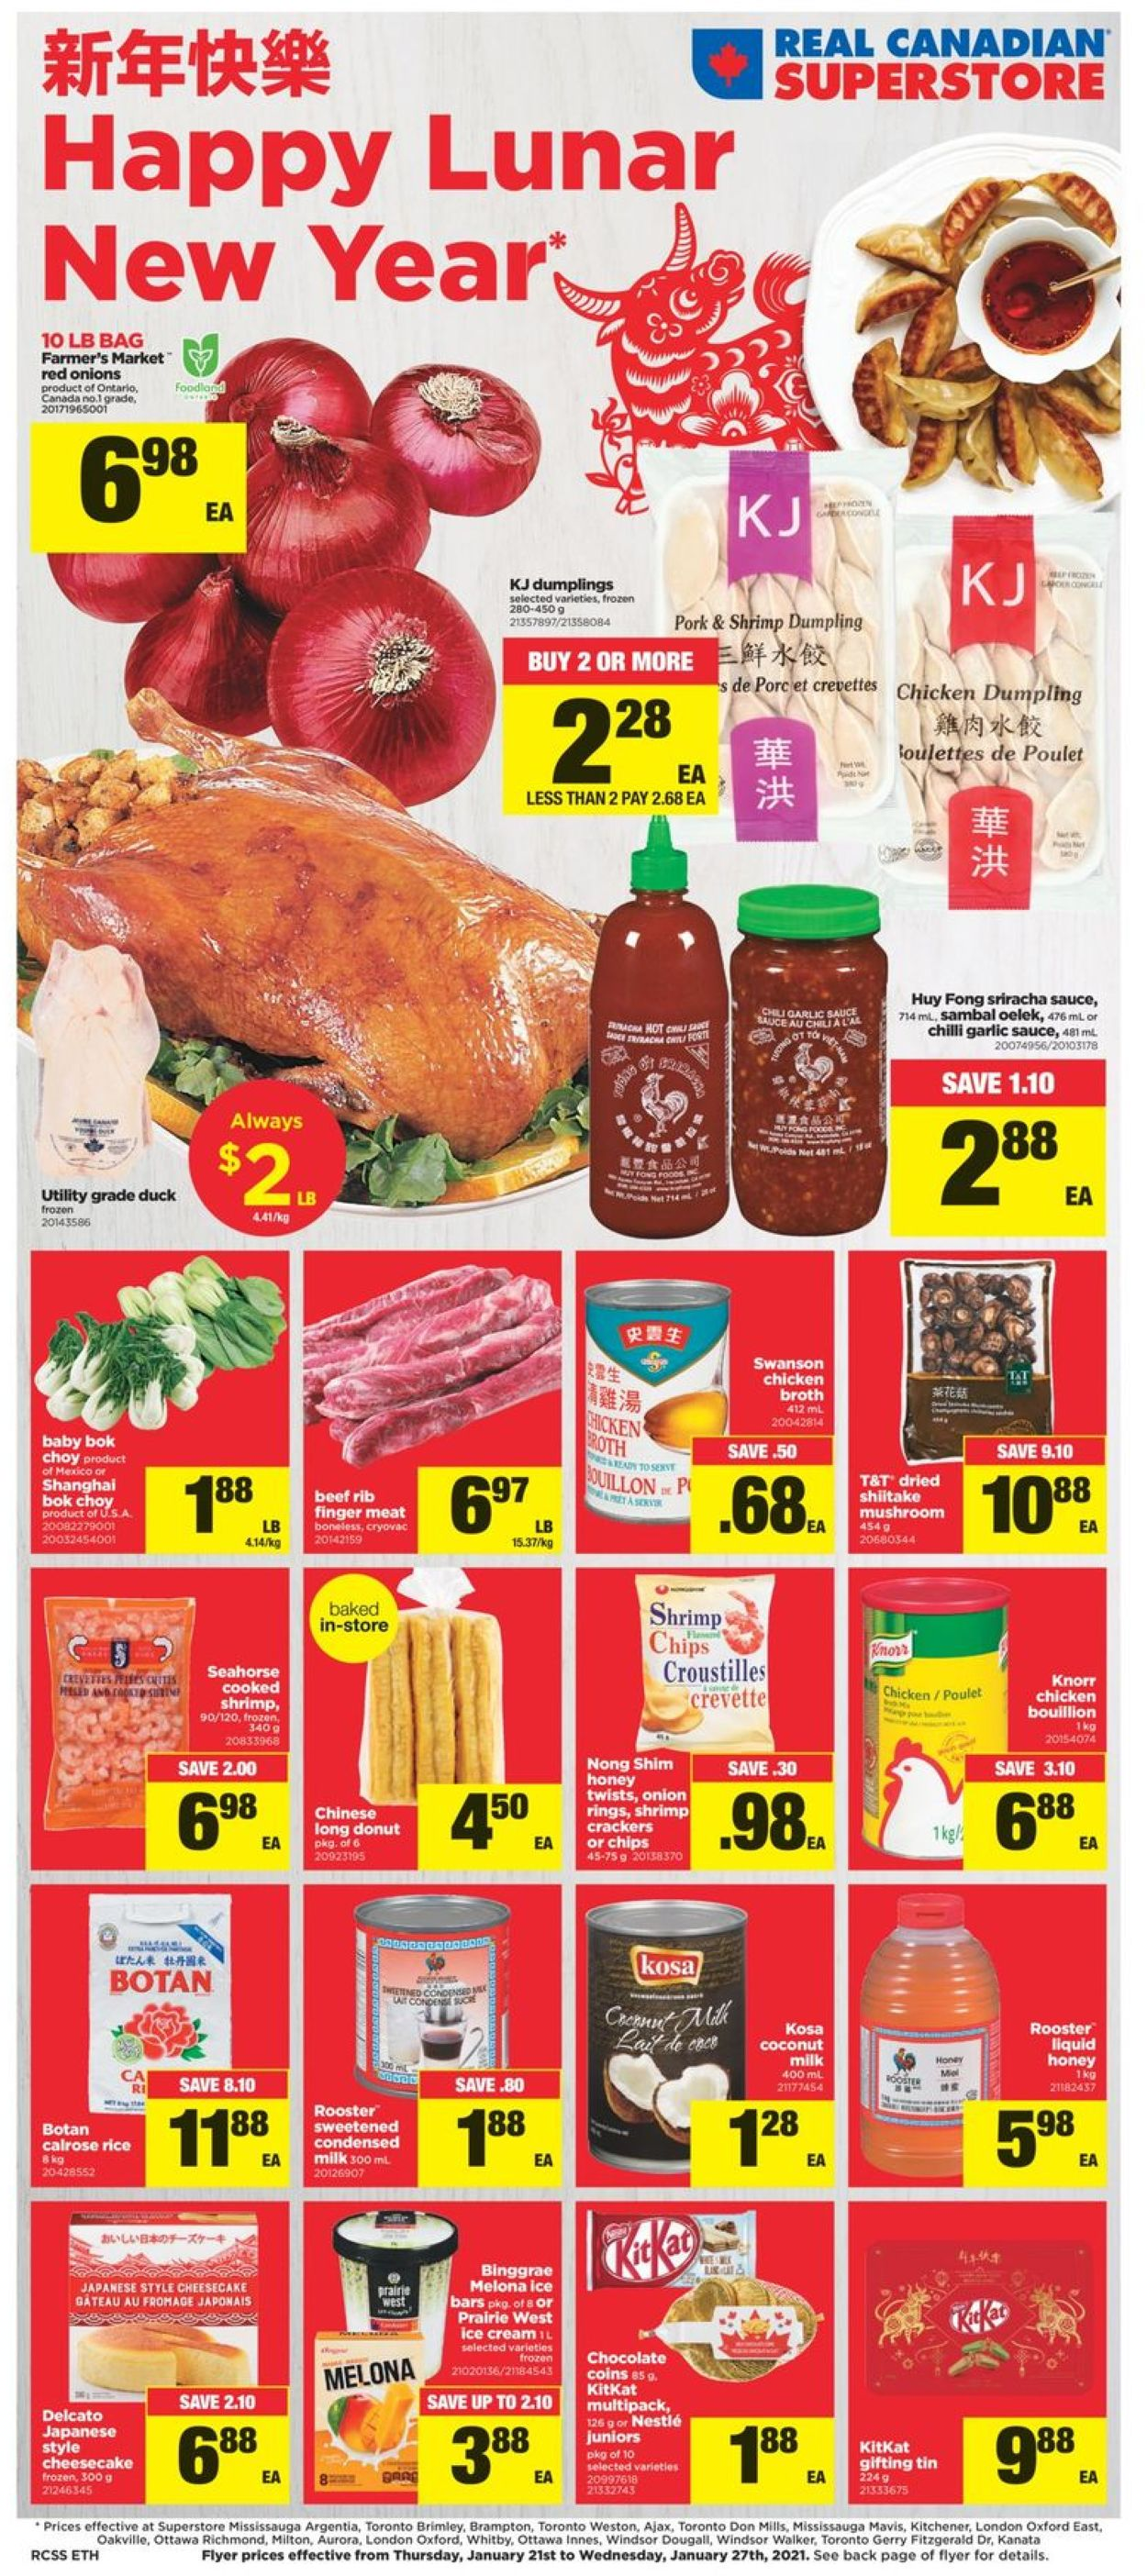 Real Canadian Superstore - Happy Lunar New Year 2021 Flyer - 01/21-01/27/2021